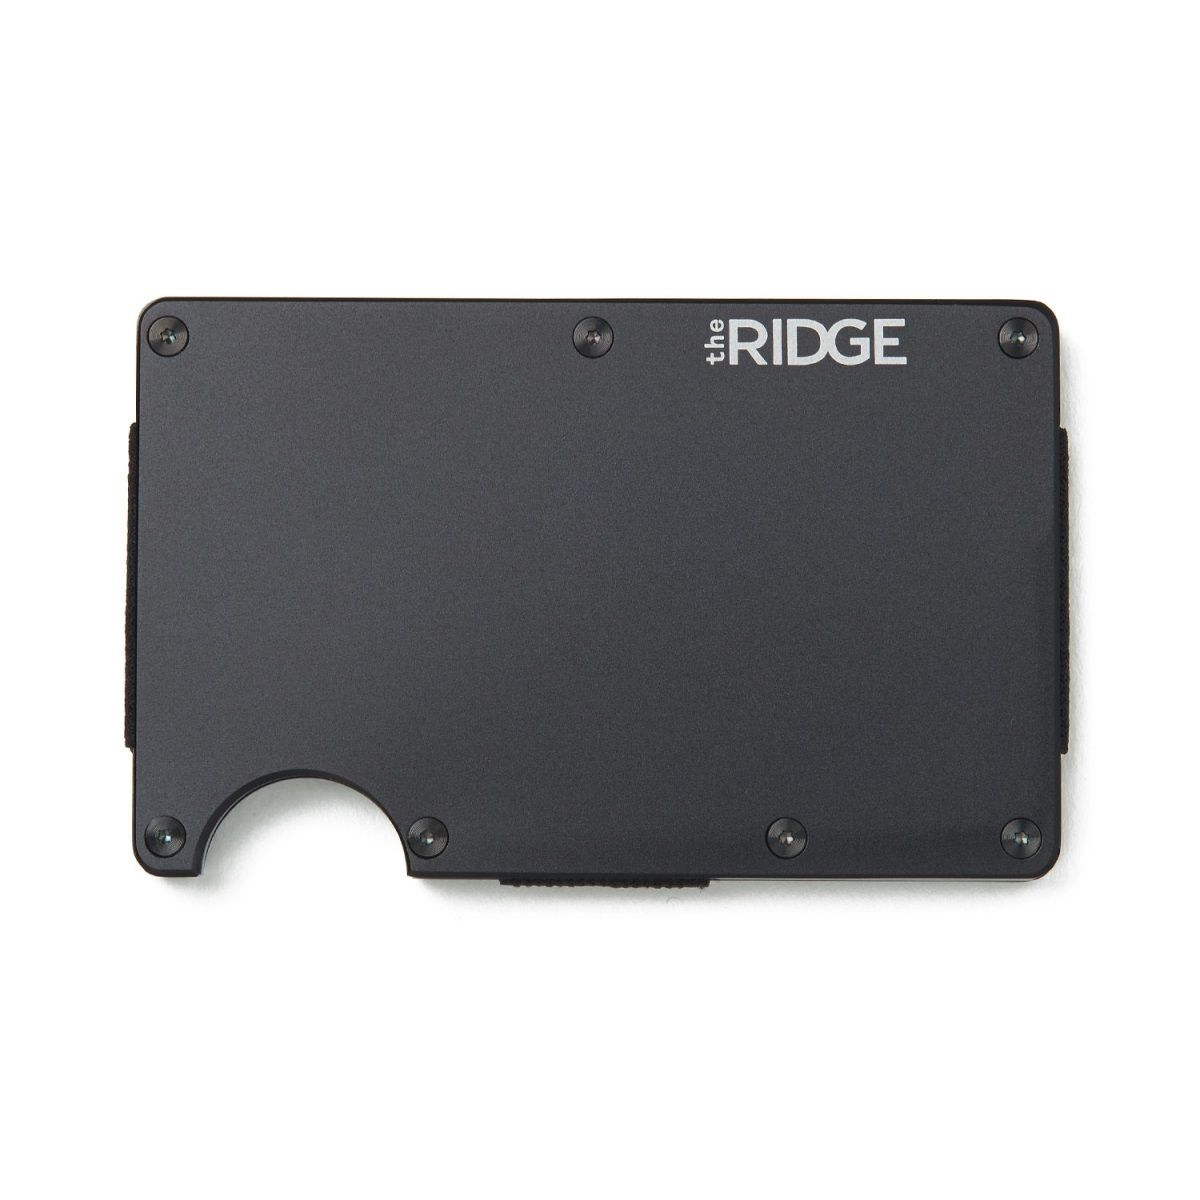 THE RIDGE Aluminum Wallet With Cash Strap - Black